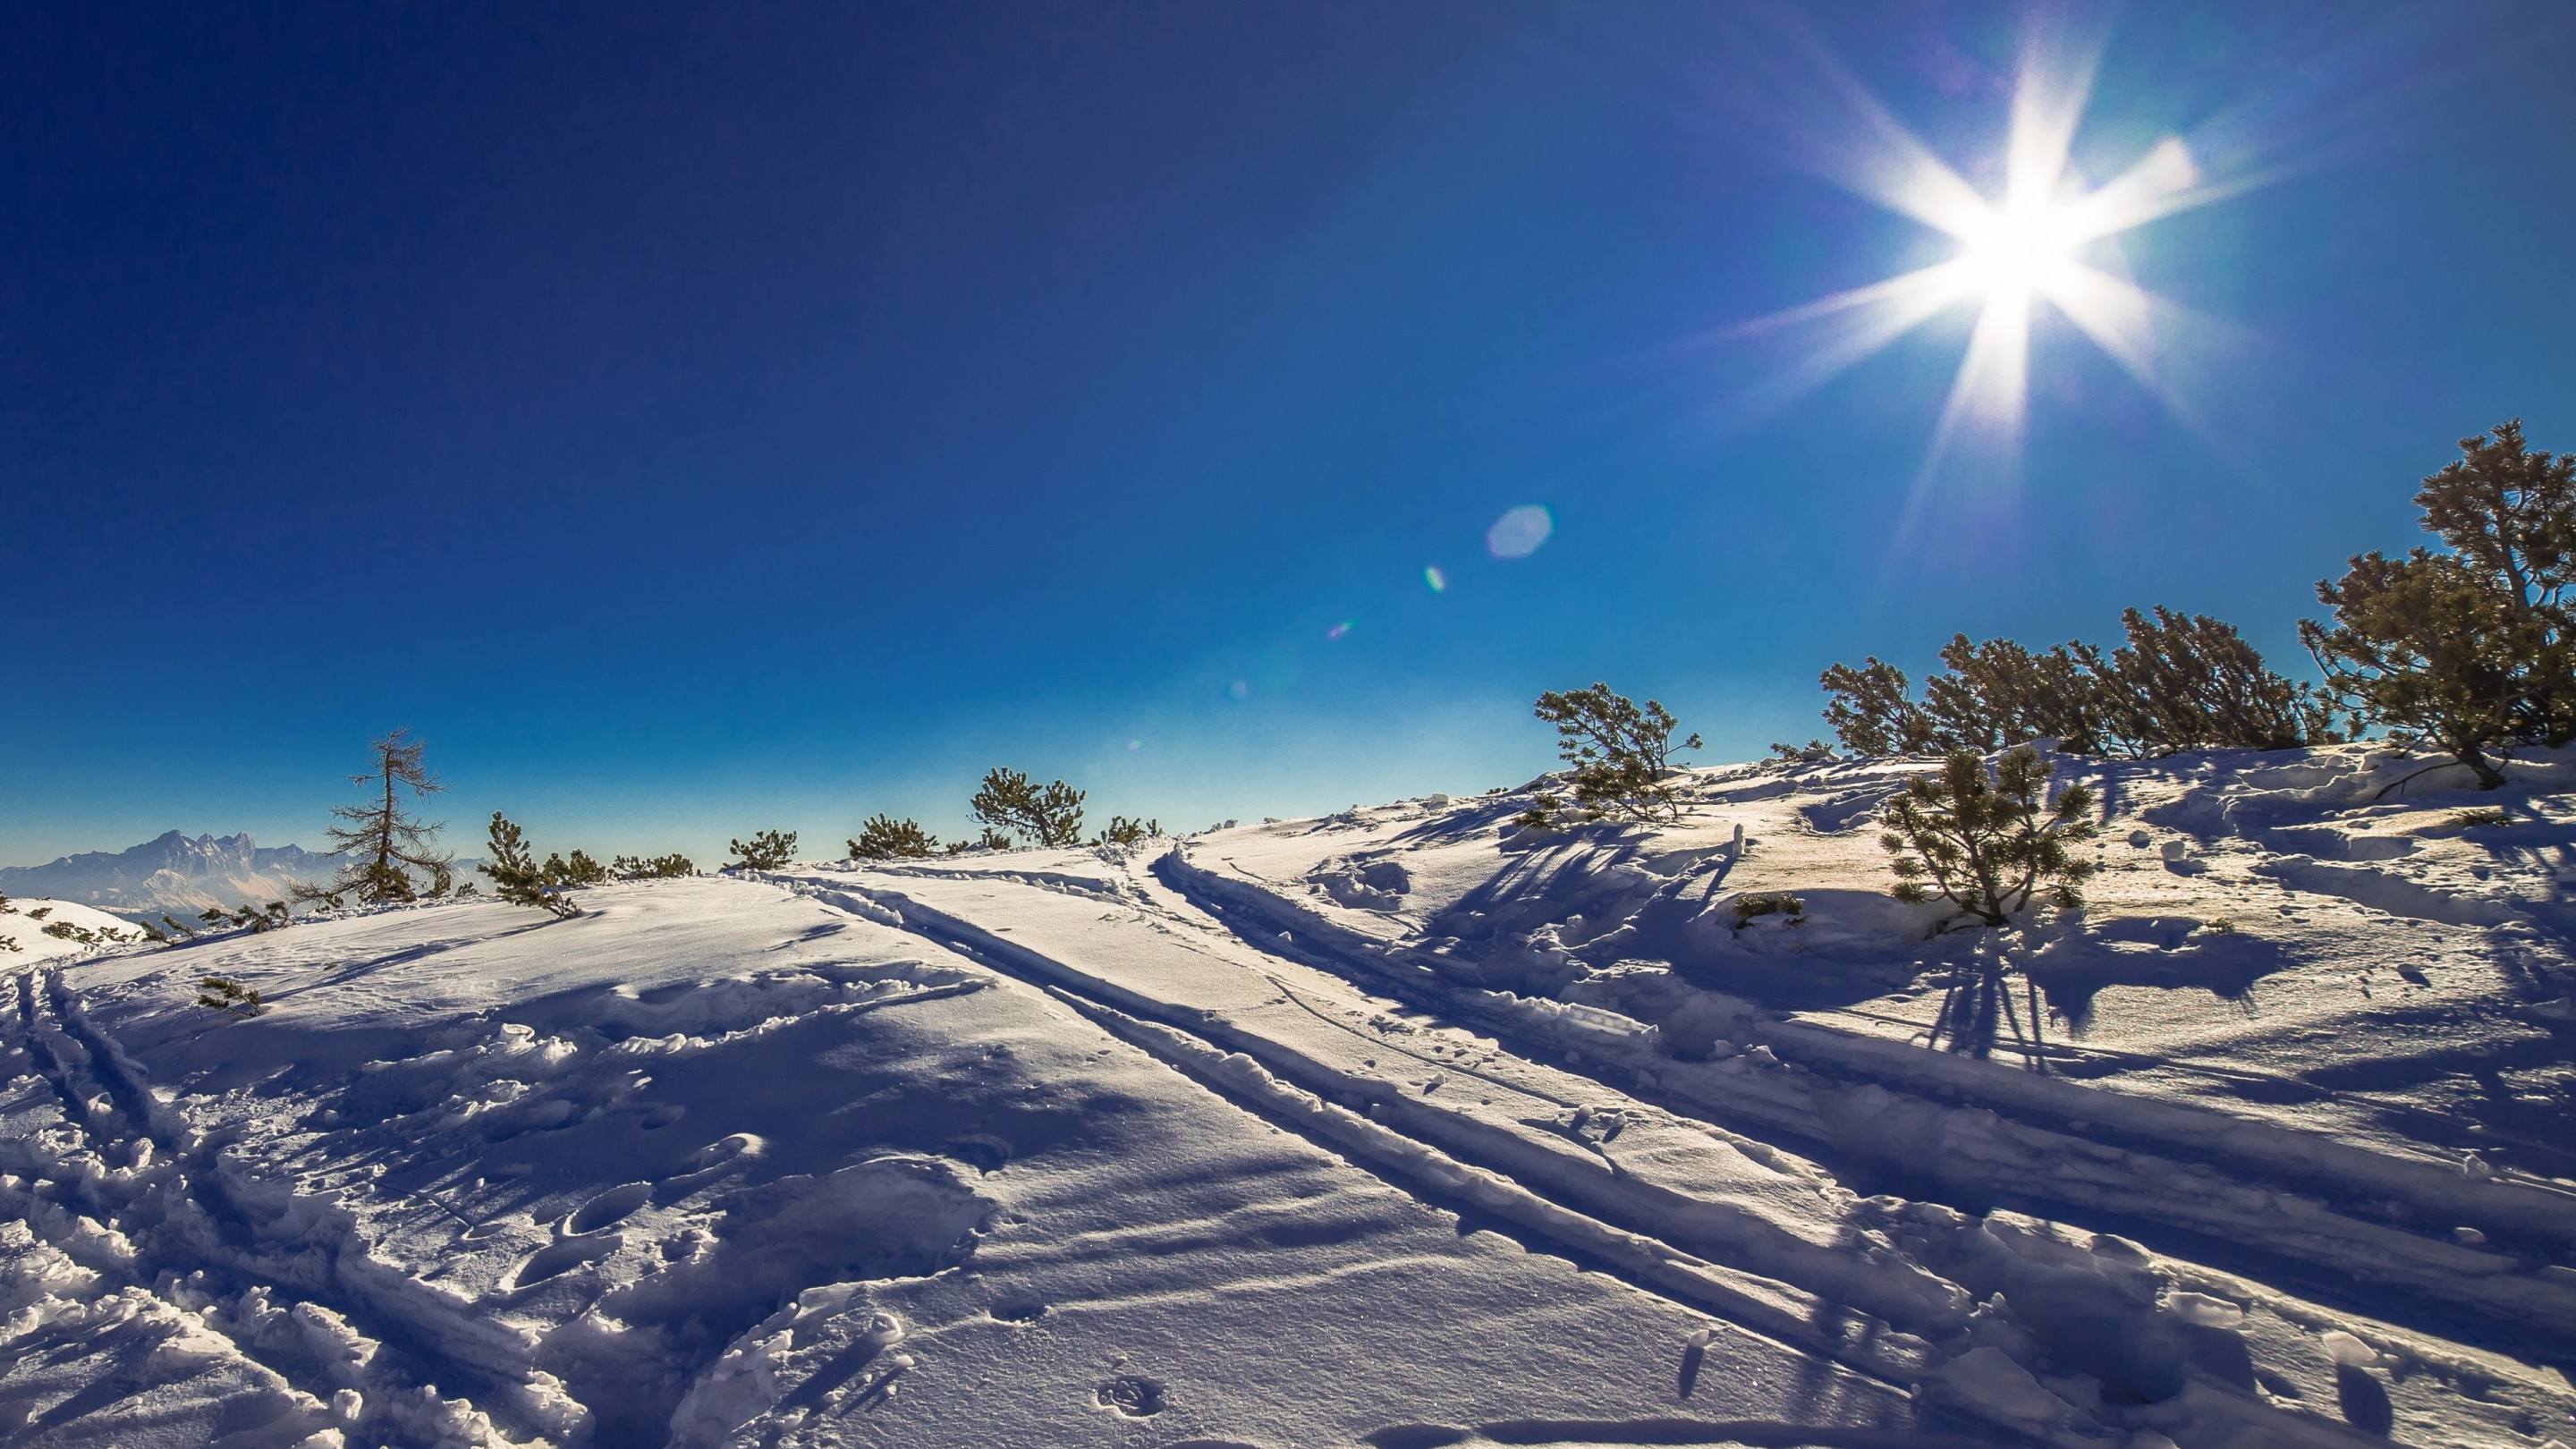 Sunny day in this Winter landscape wallpaper 2880x1620